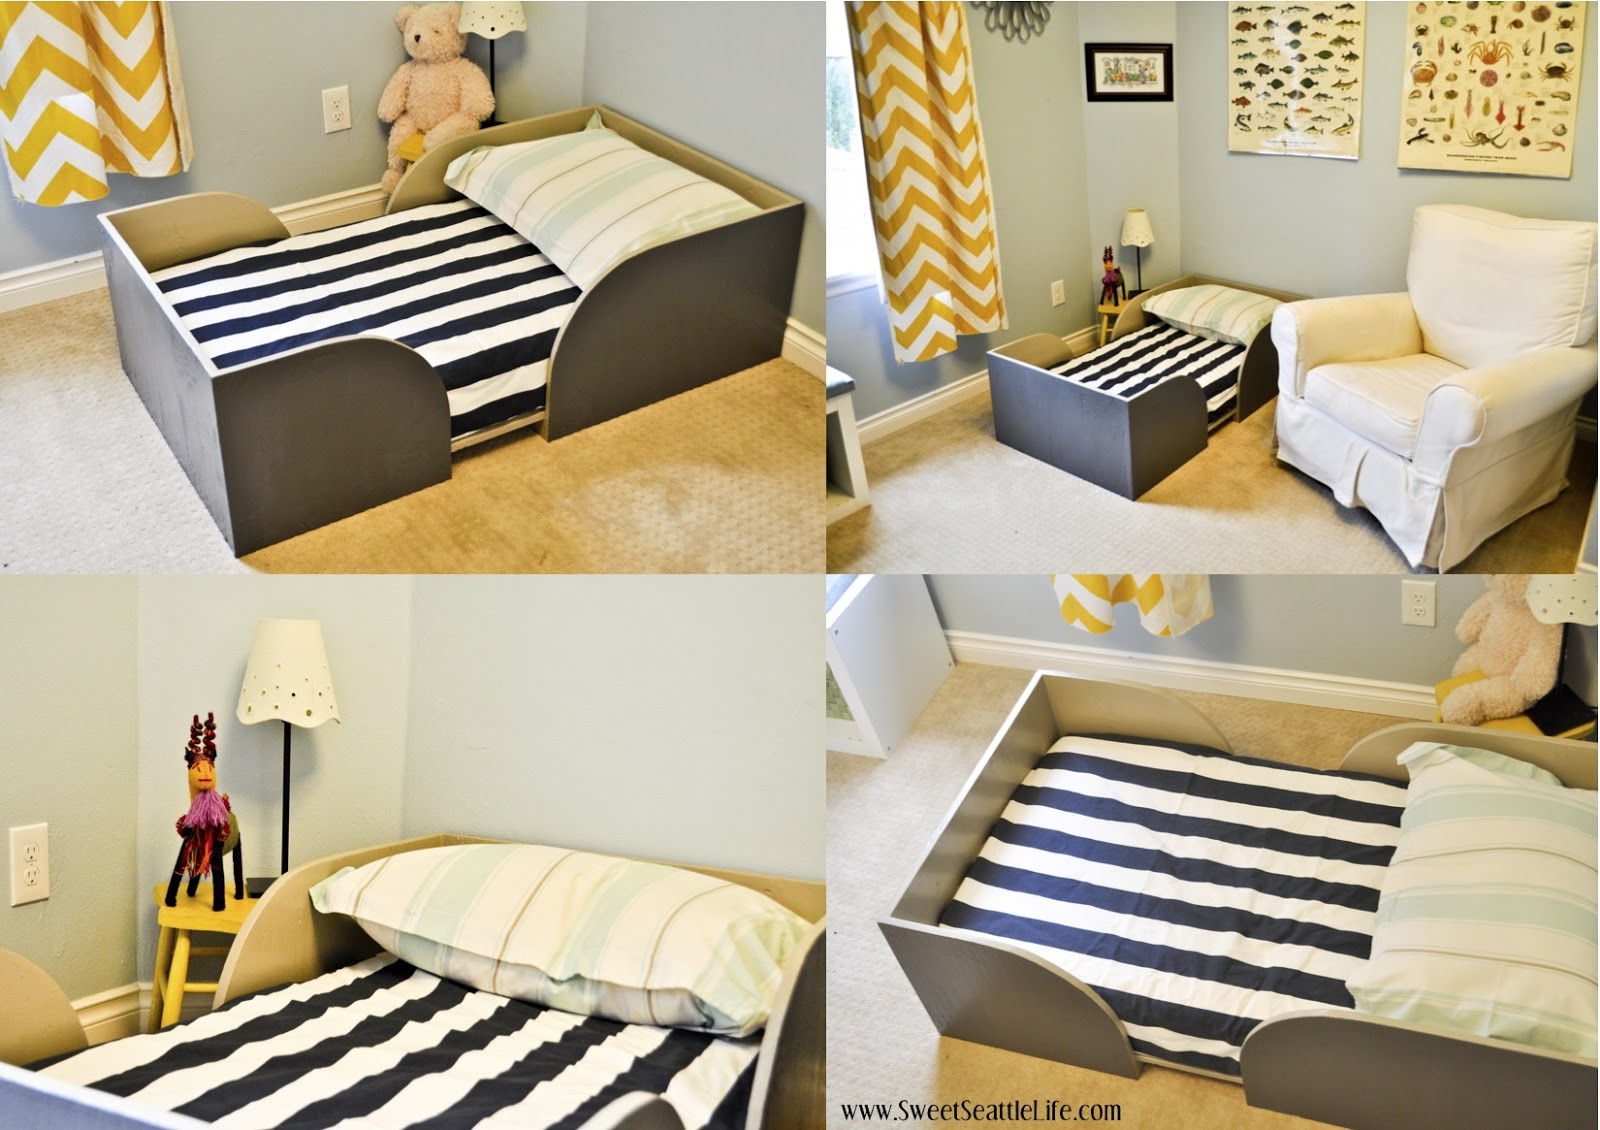 DIY Toddler House Bed  Chris and Sonja The Sweet Seattle Life DIY Toddler Bed